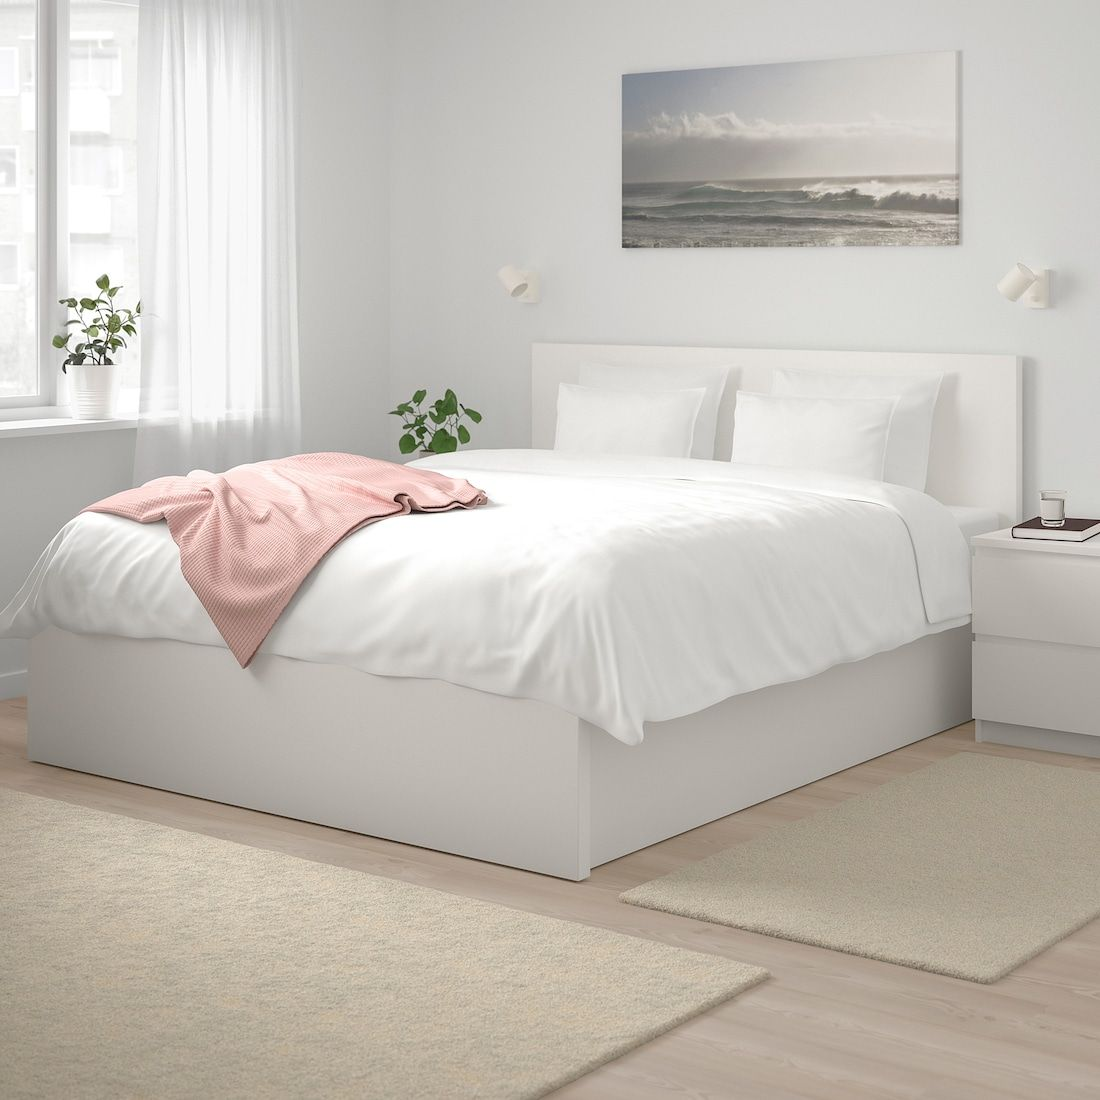 Malm Storage Bed White Queen In 2020 Malm Bed Malm Bed Frame